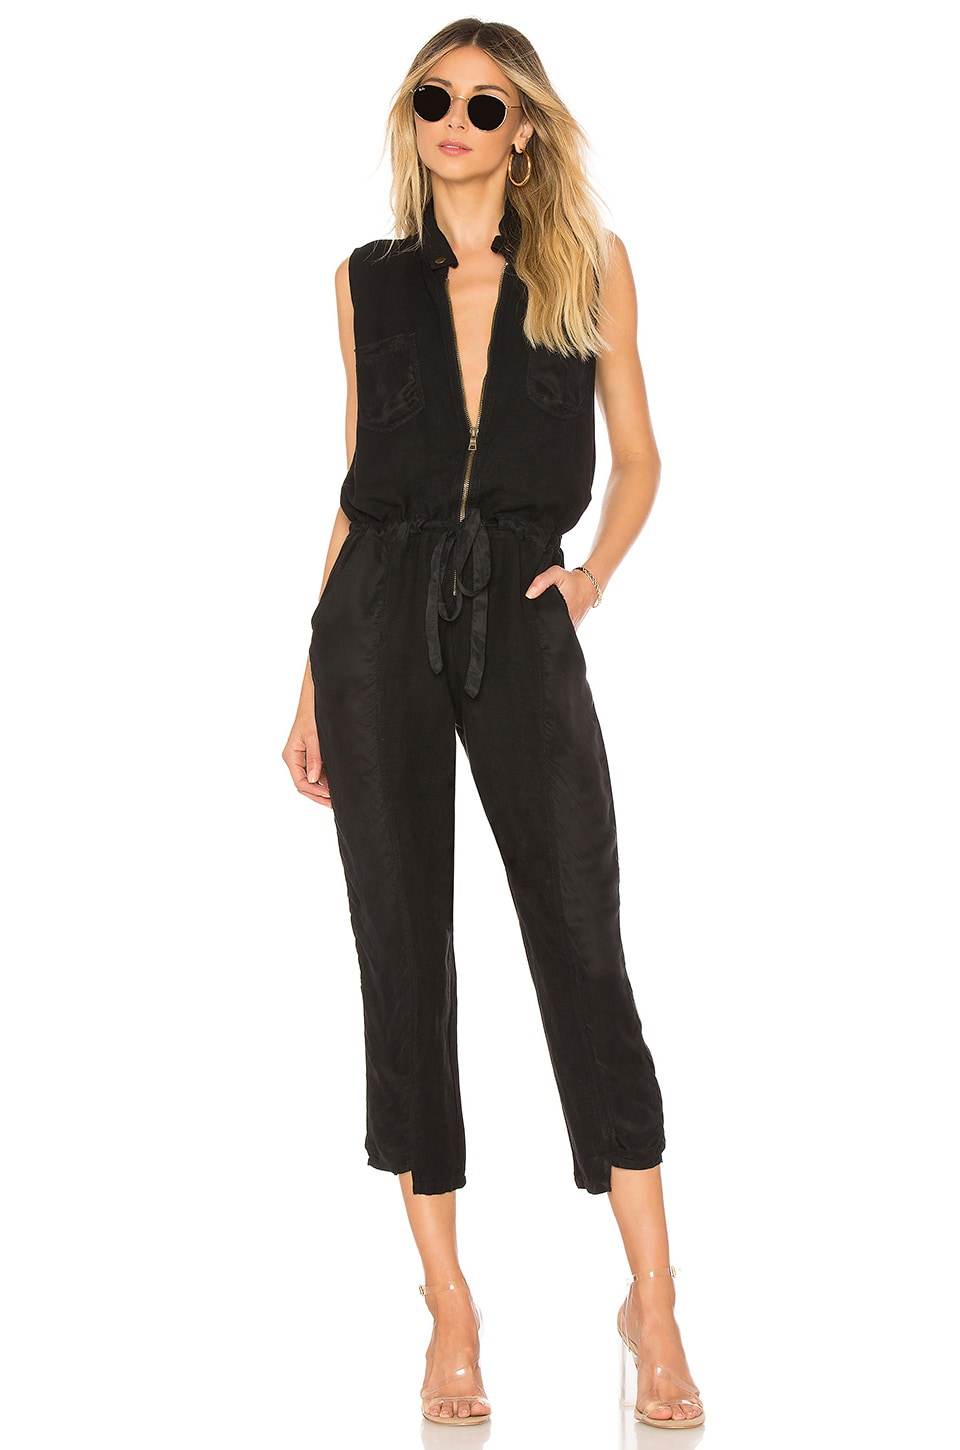 YFB CLOTHING Linette Jumpsuit in Black